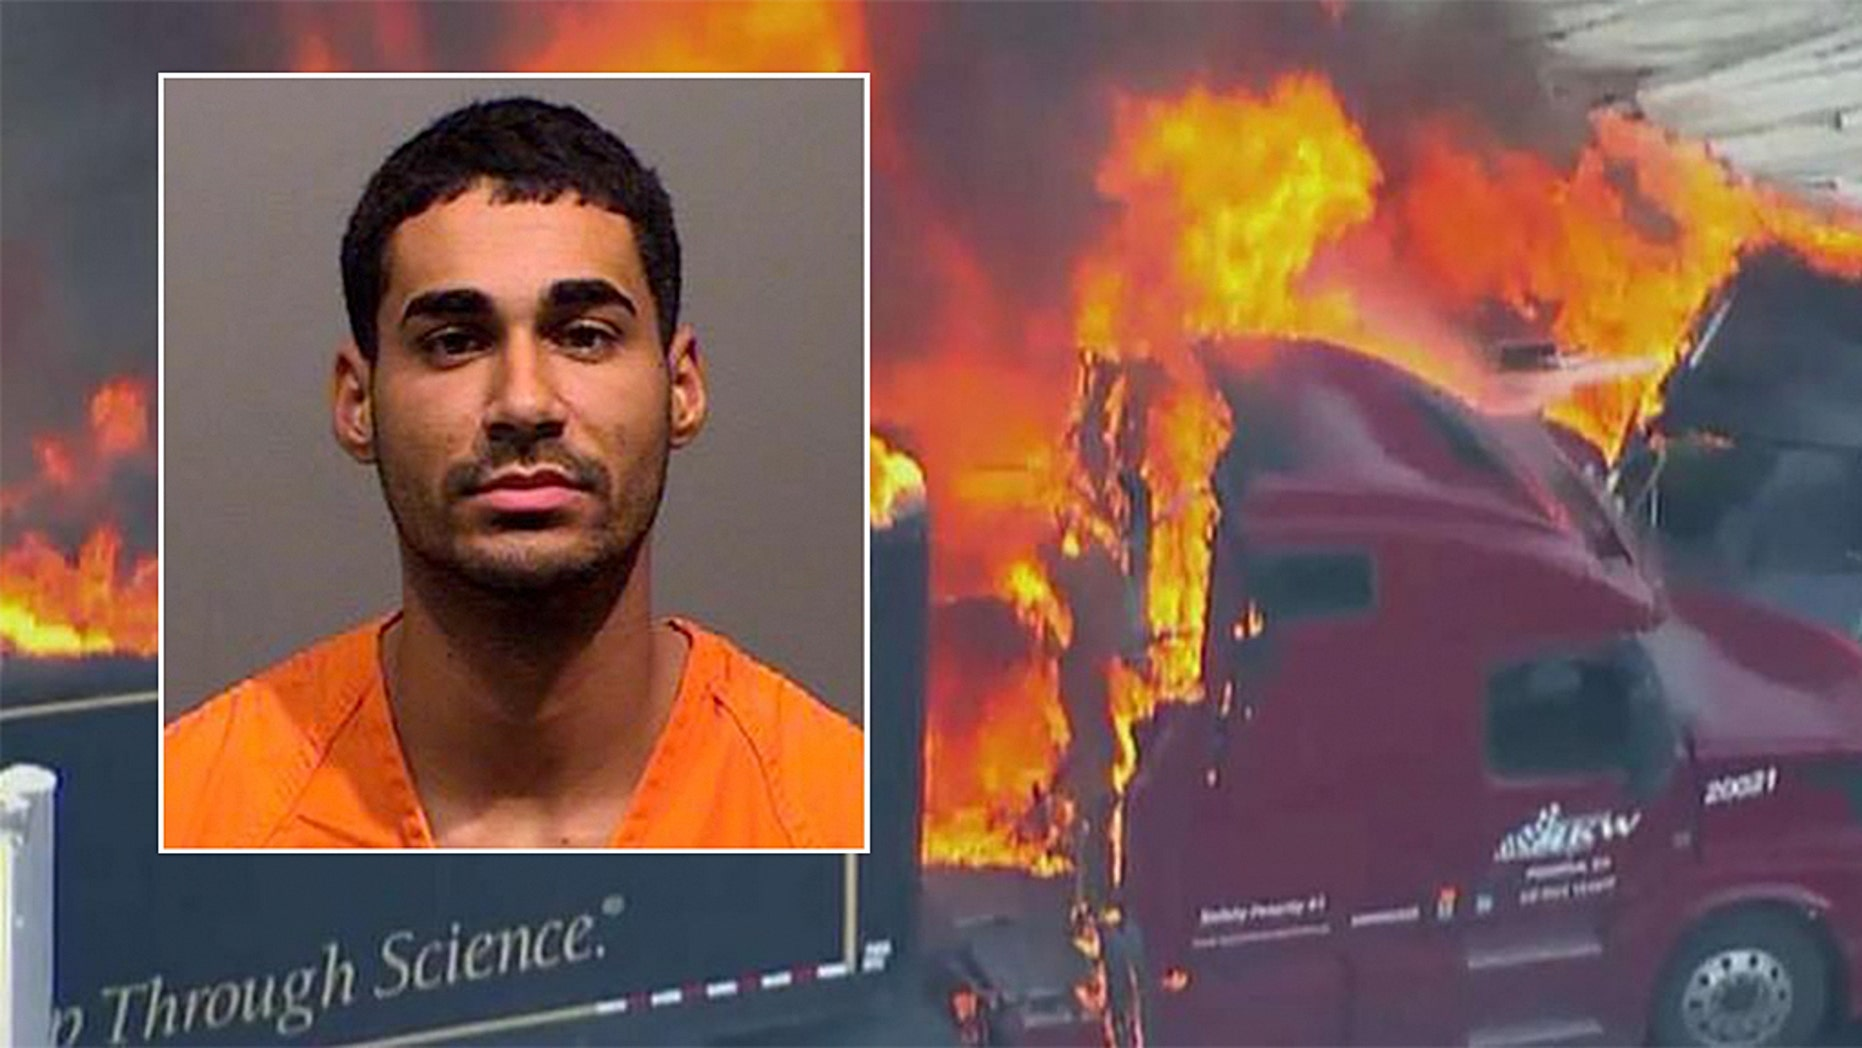 Rogel Lazaro Aguilera-Mederos, 23, appeared in court on Saturday after being arrested on suspicion of vehicular homicide following a 28-car pileup in Colorado that killed four people and injured at least six more